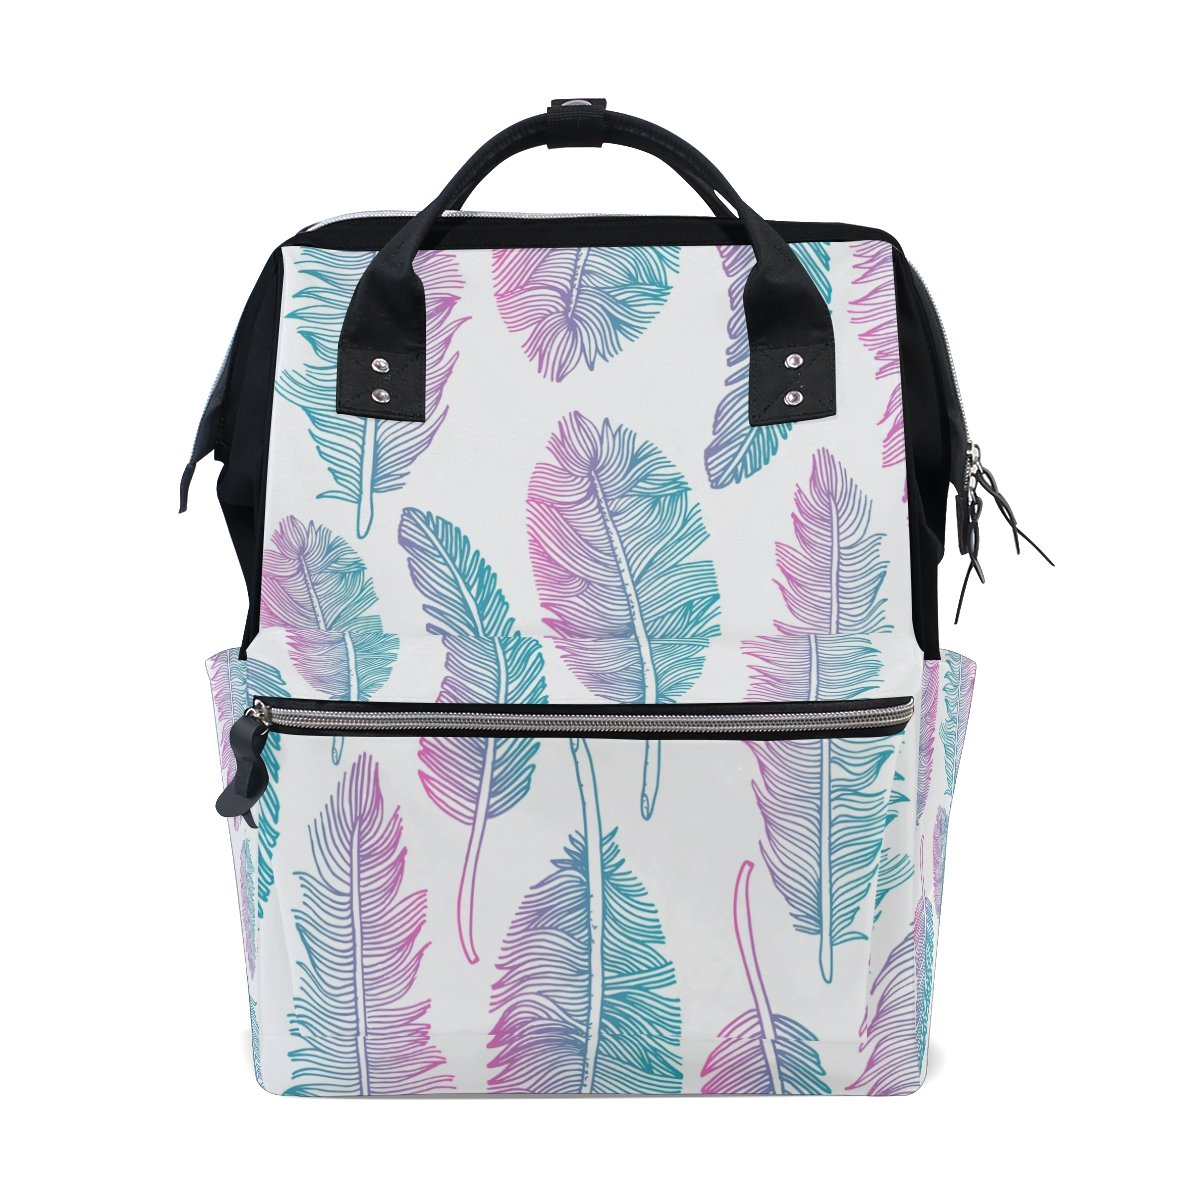 Diaper Bag Multi Functional Stylish Art Peacock Feathers Large Capacity Nappy Bags for Baby Care Mummy Backpack Durable Travel Backpack